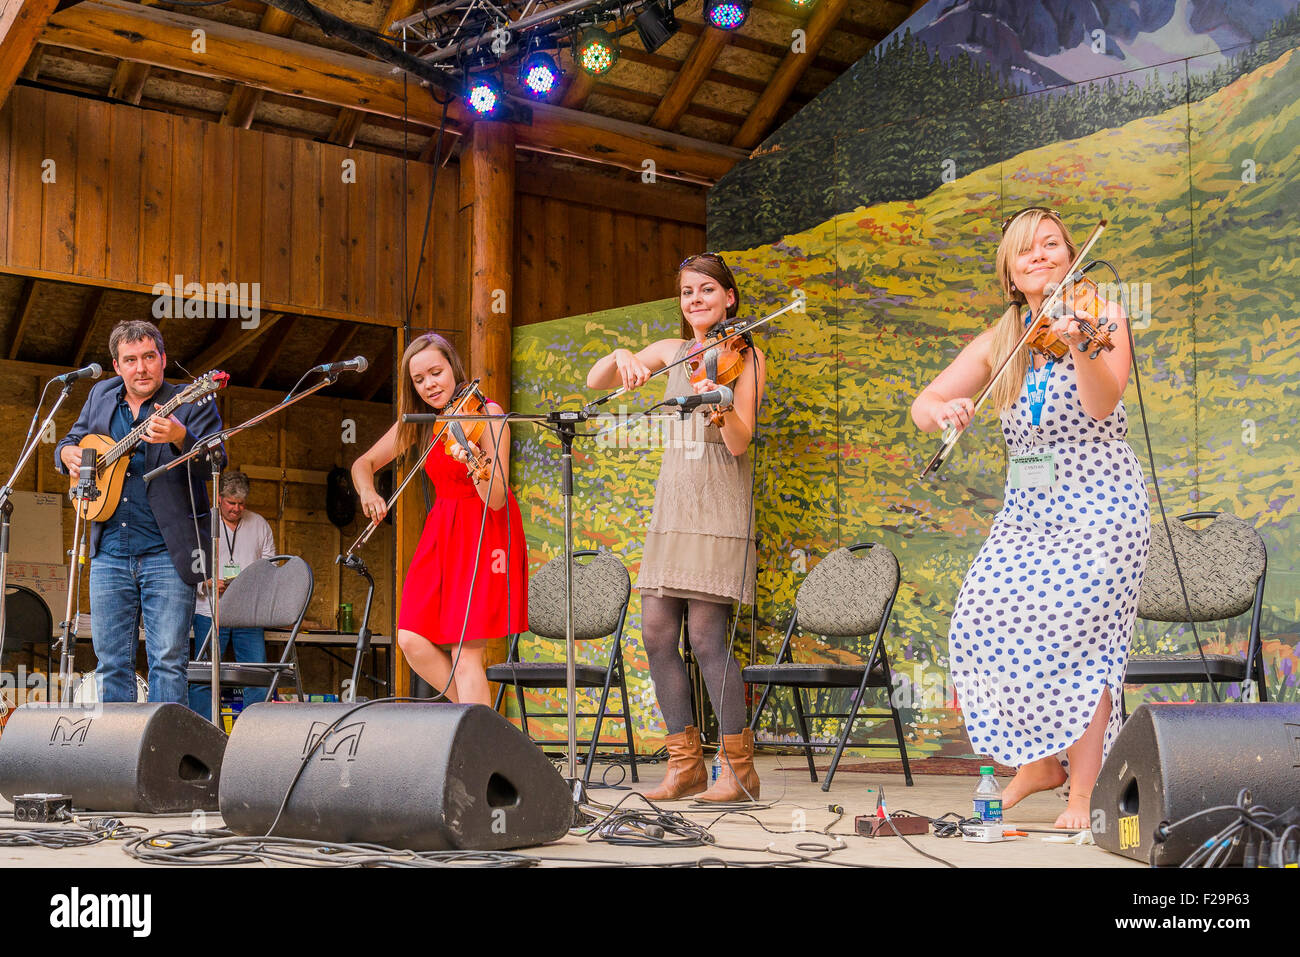 Coig, perform on stage at the Canmore Folk Music Festival, Canmore, Alberta, Canada - Stock Image